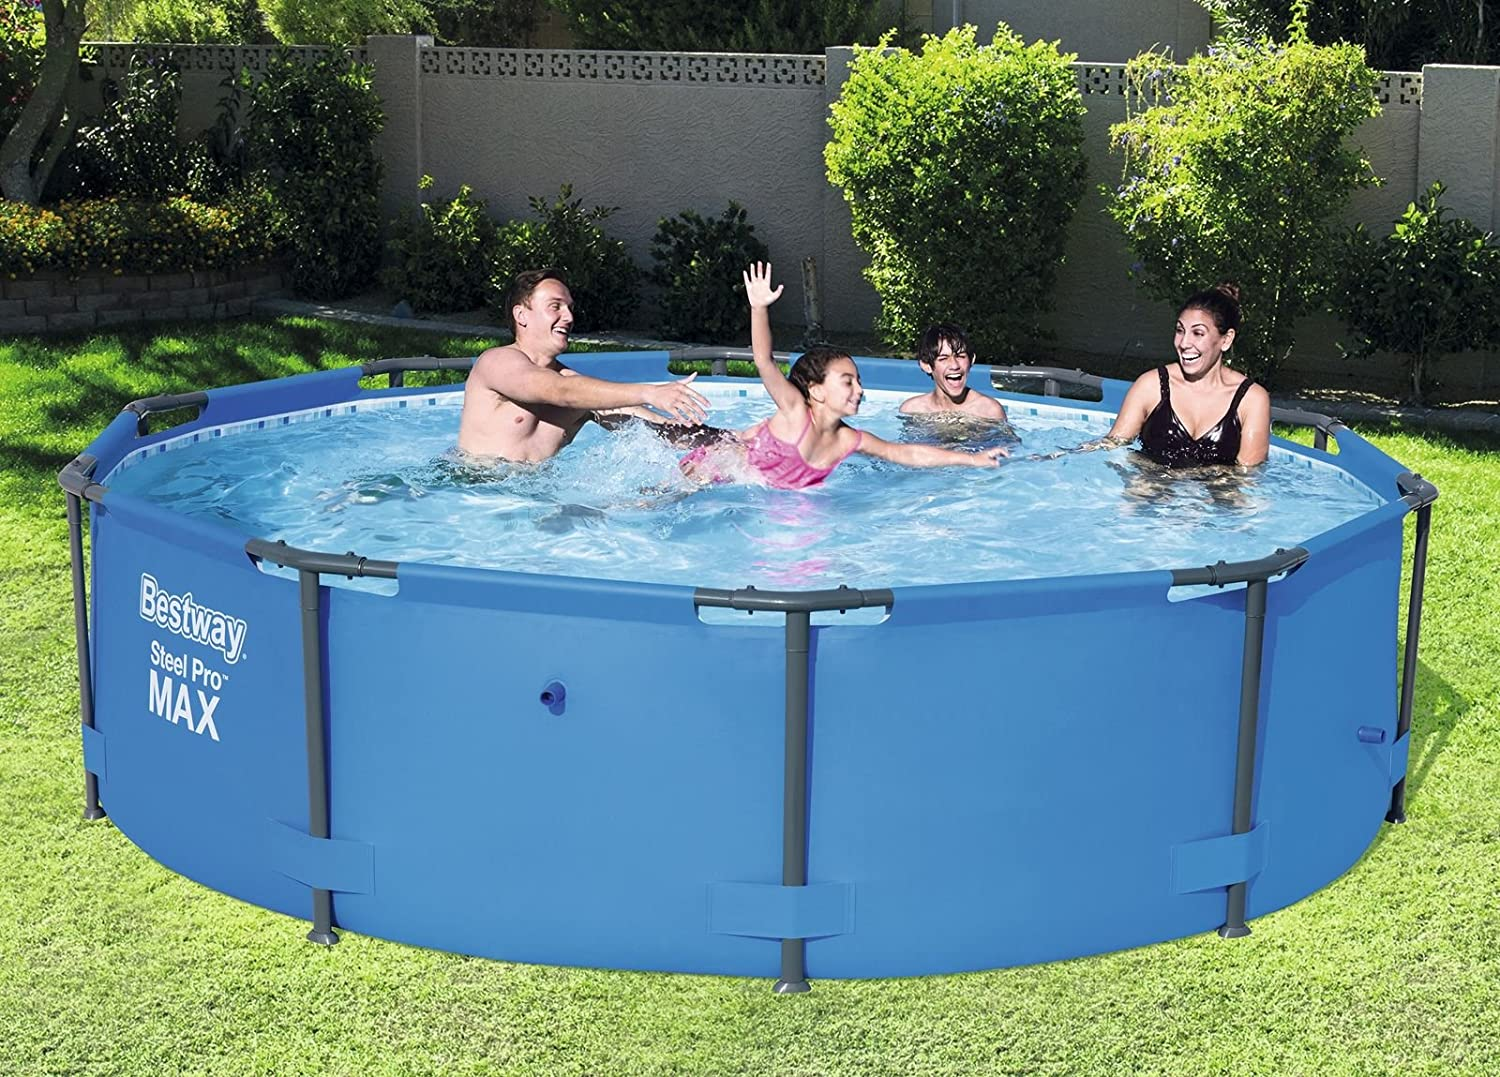 Bestway 56406 - Piscina Desmontable Tubular Steel Pro Max 305x76 cm: Amazon.es: Jardín